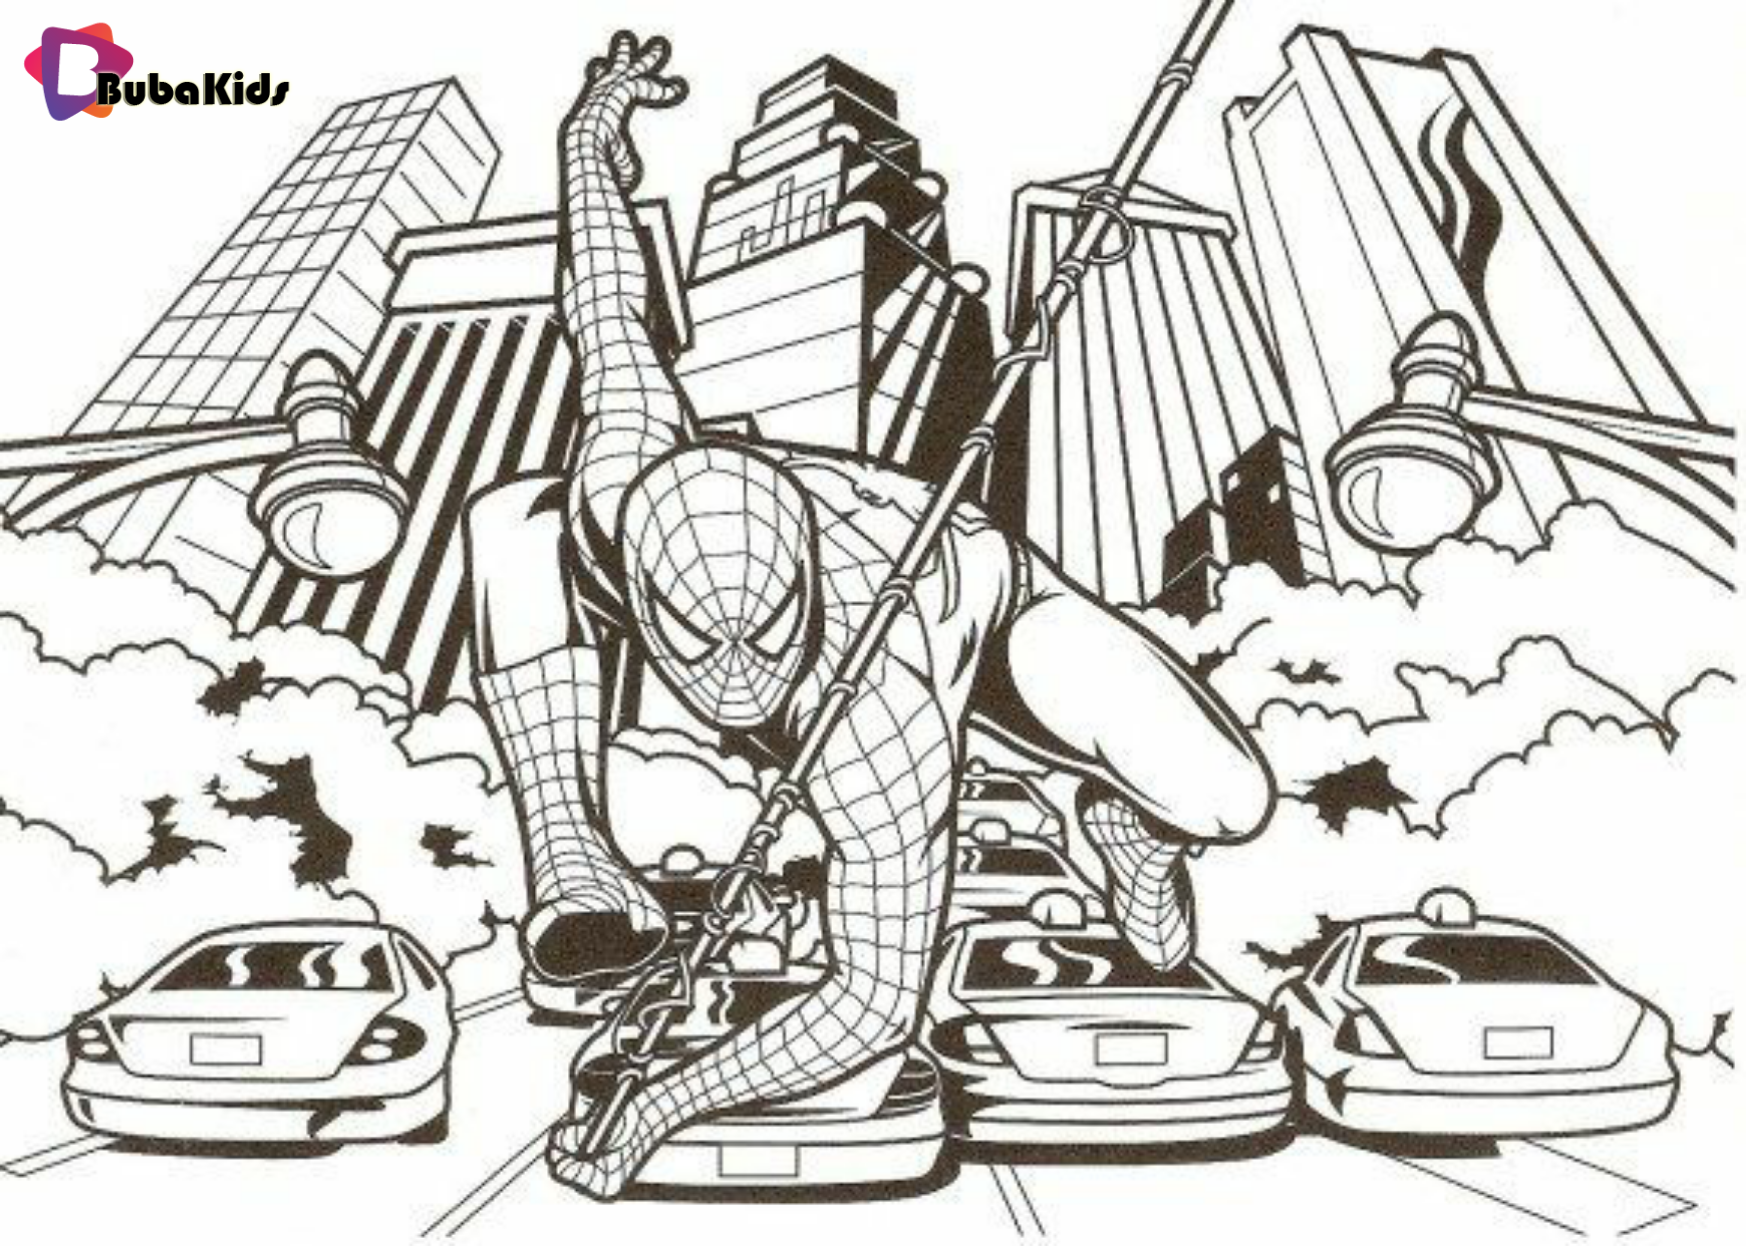 Amazing Spiderman Coloring Pages Amazing Coloring Pages Printable Spiderman Amazing Colo Spiderman Coloring Free Coloring Pages Coloring Pages For Kids